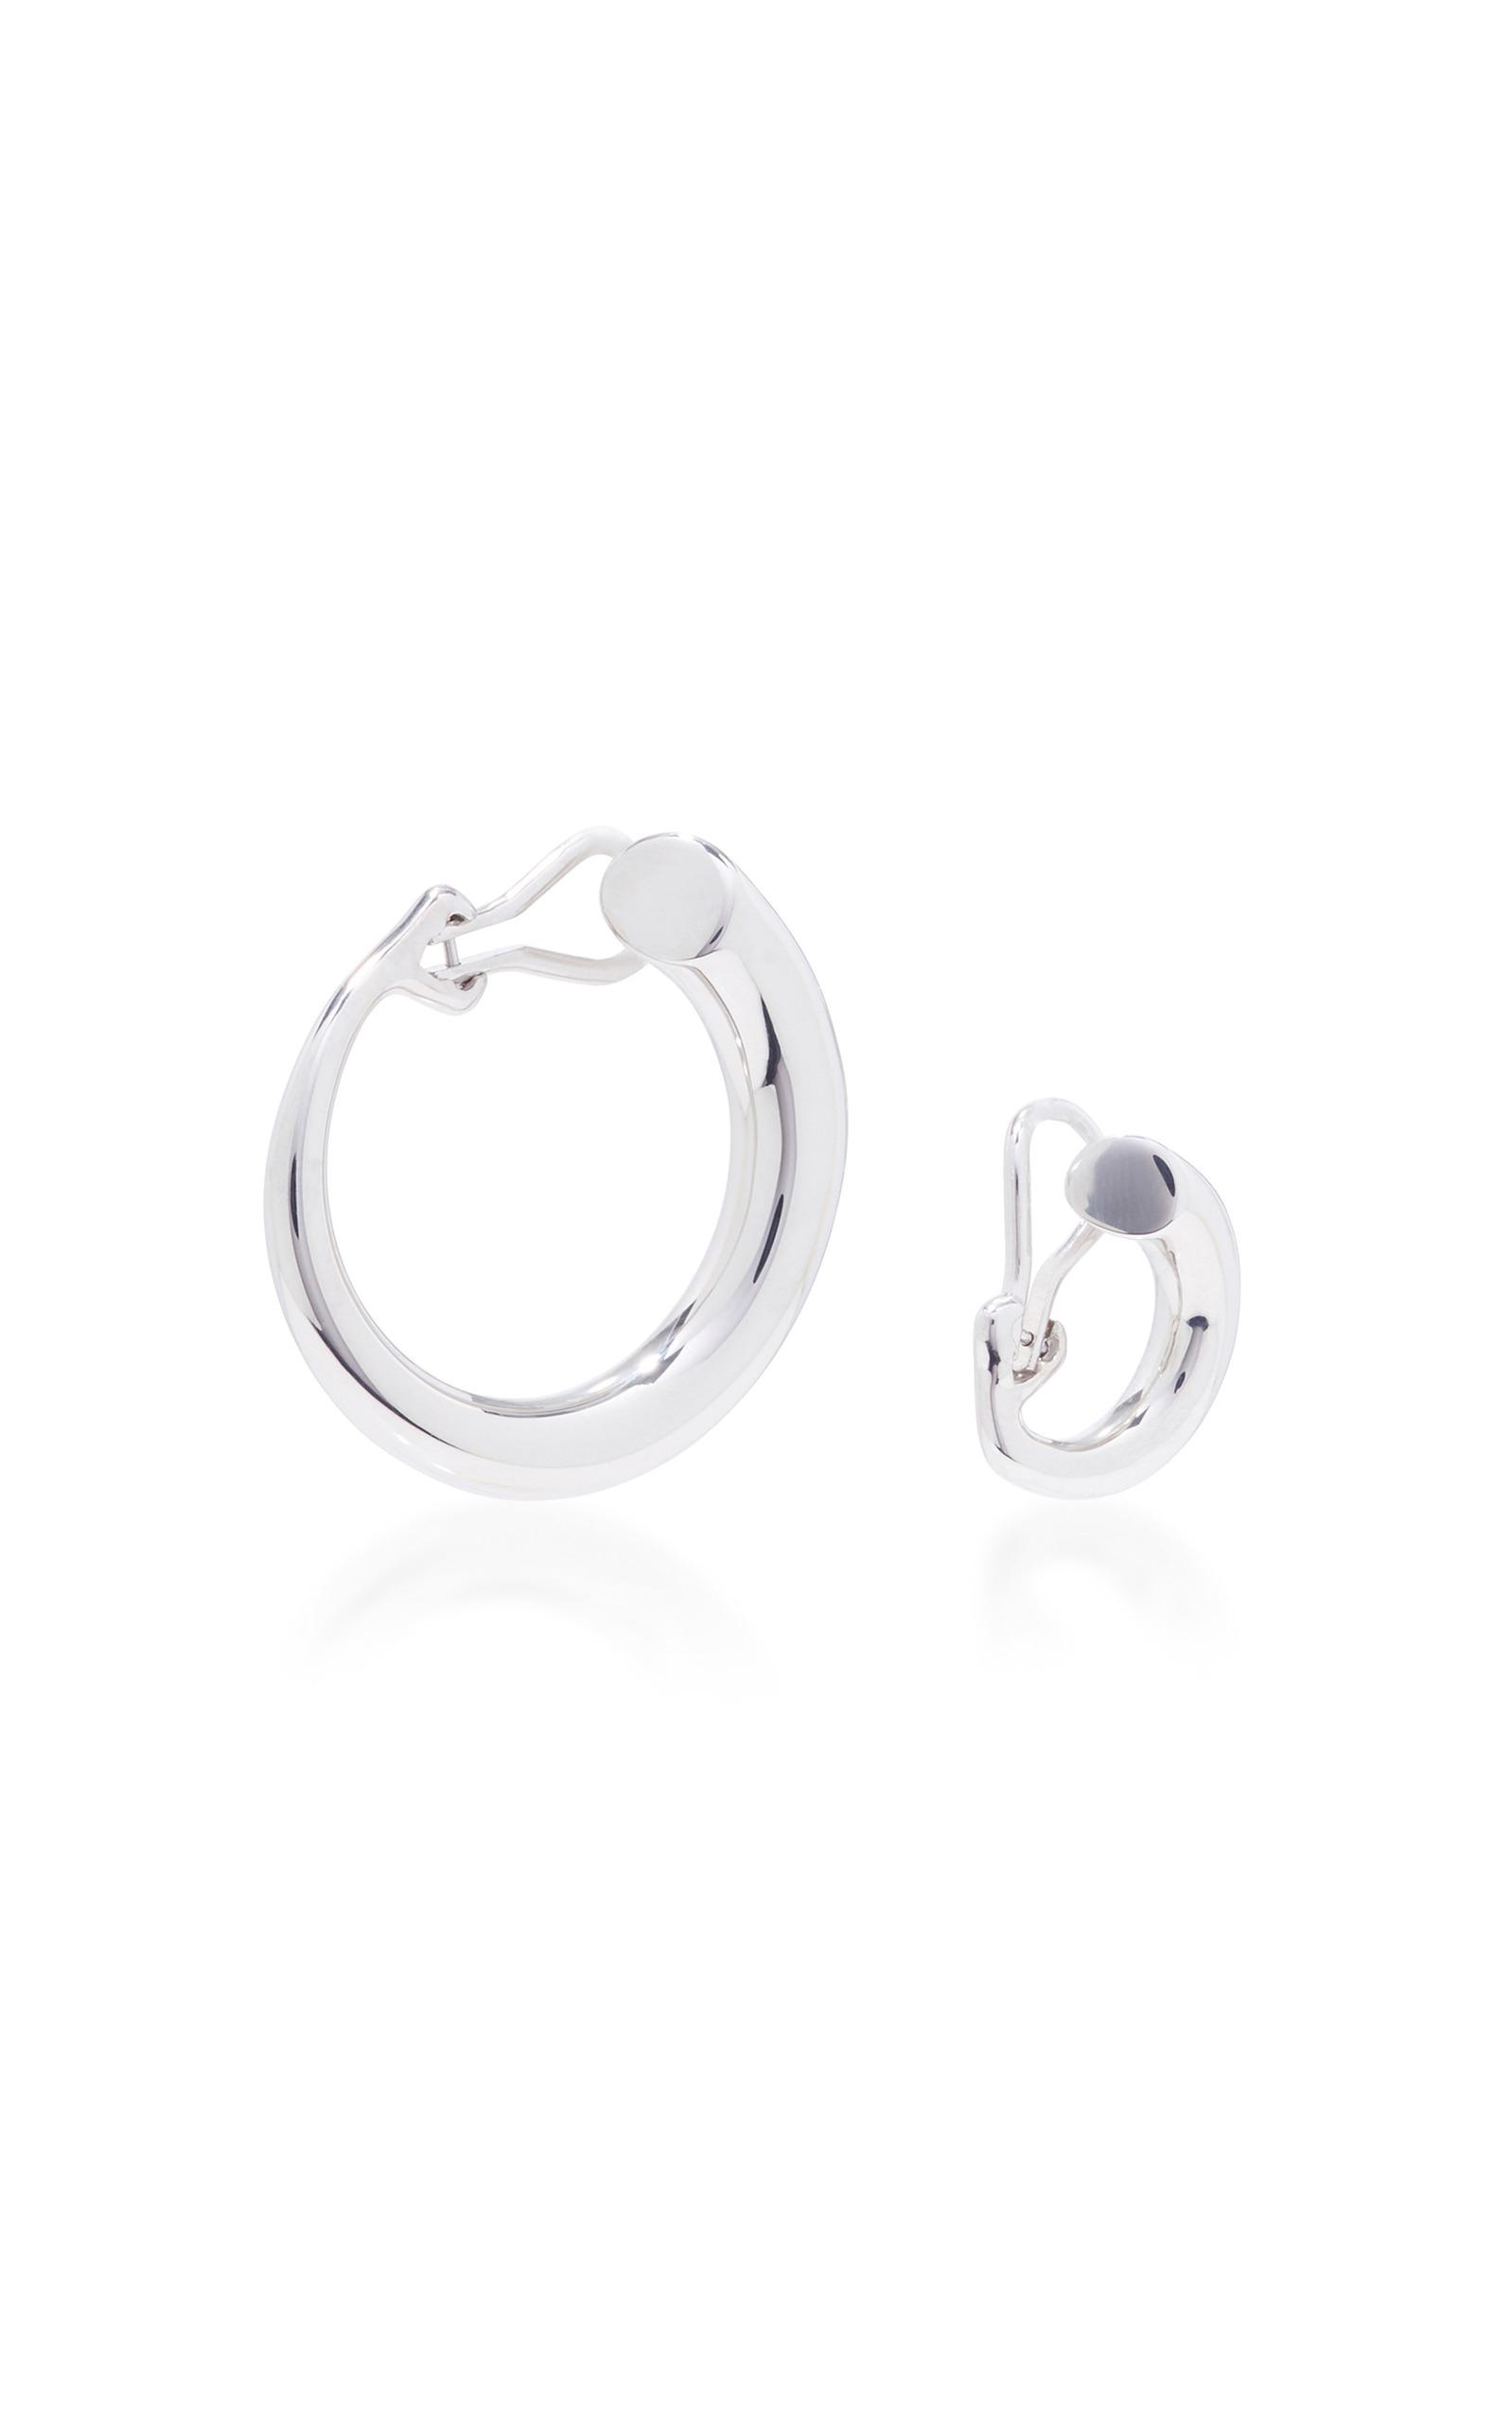 12d393432 Charlotte Chesnais Monie Small And Large Silver Clip Earrings in ...